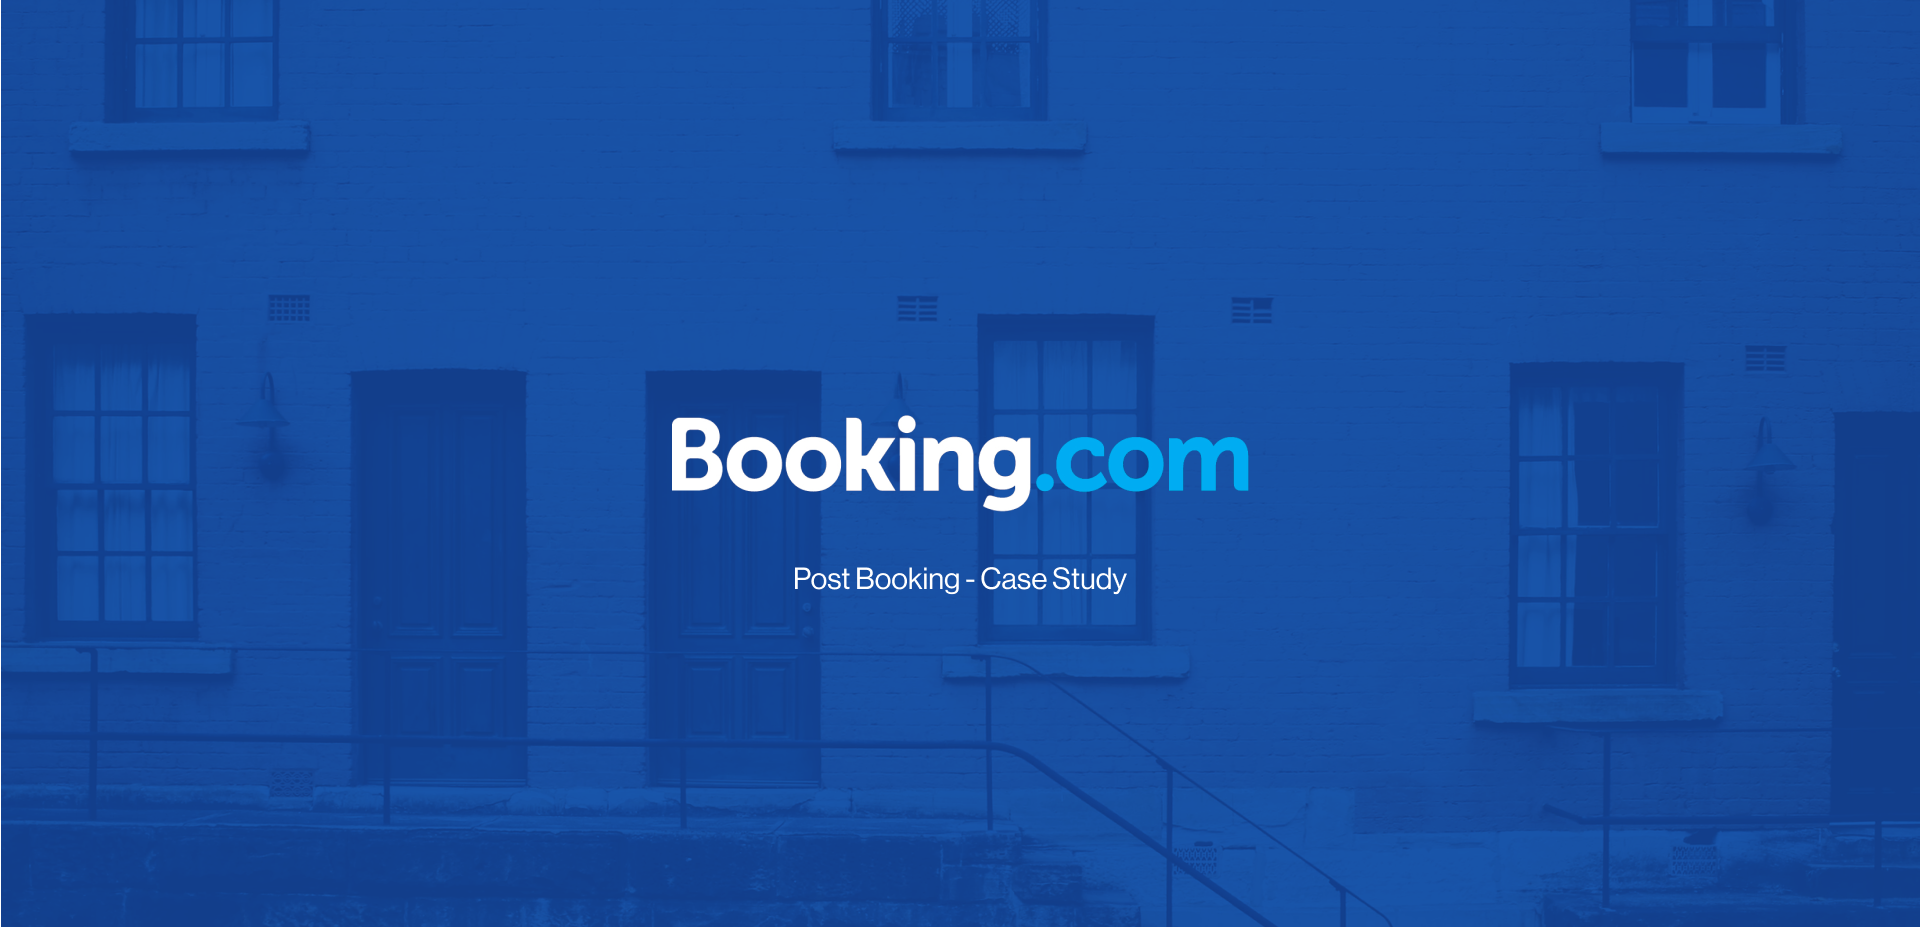 Protected: Booking